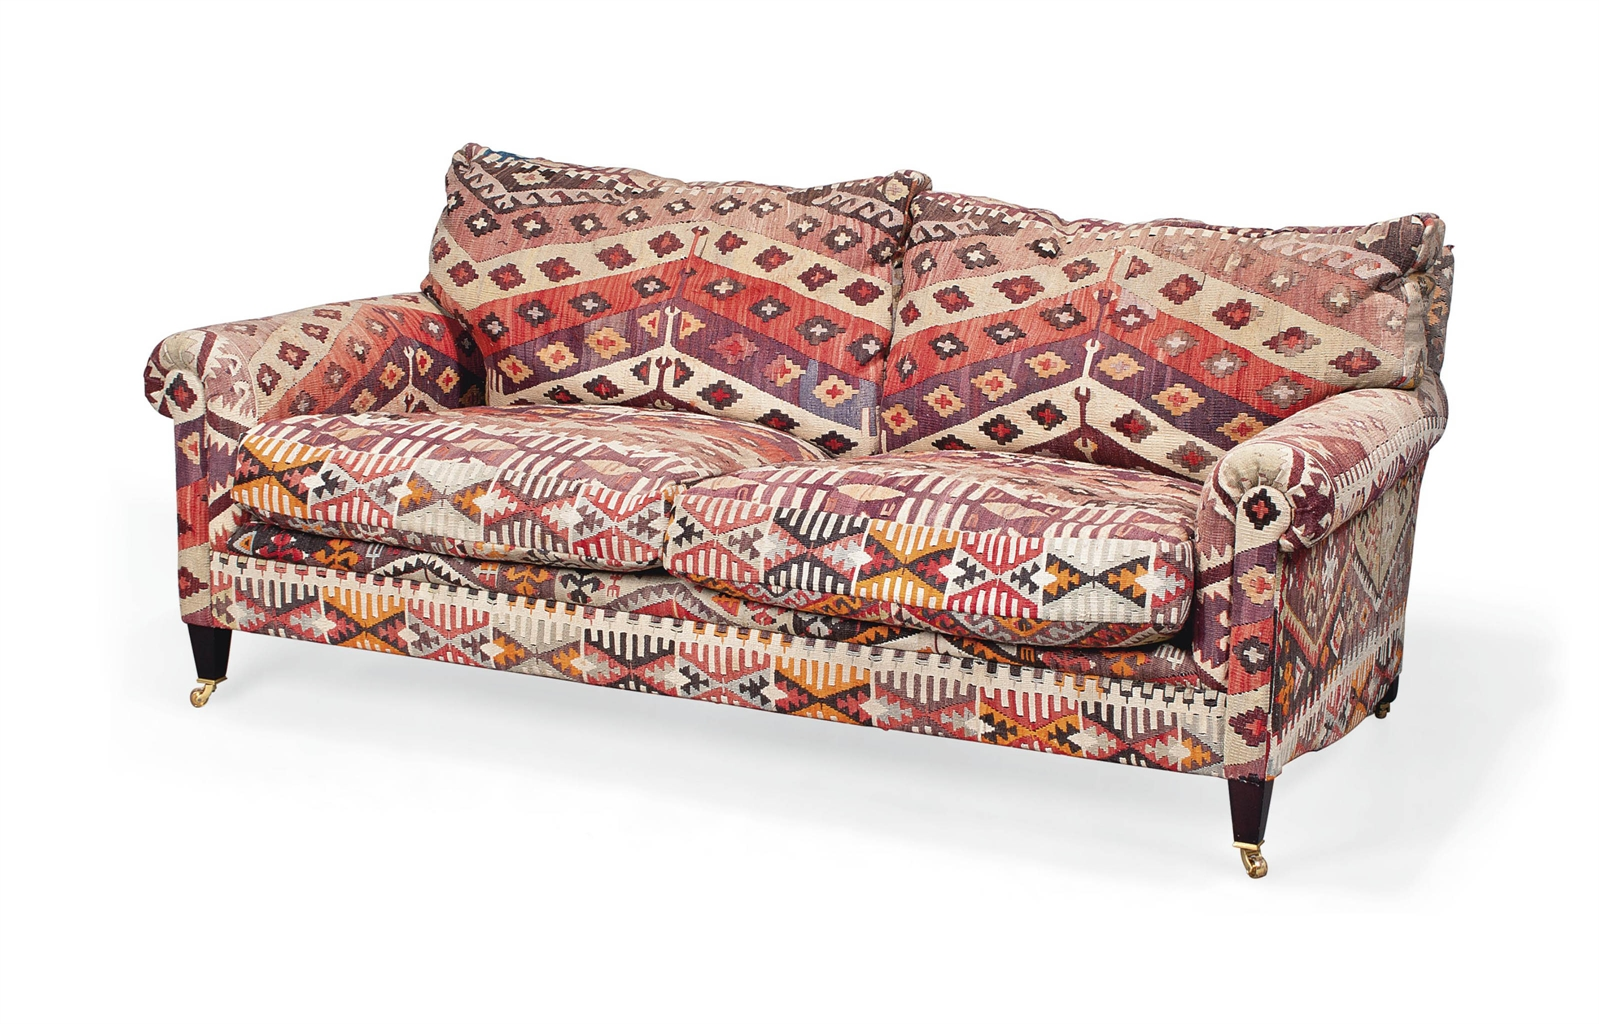 A George Smith Kilim Upholstered Sofa Of Recent